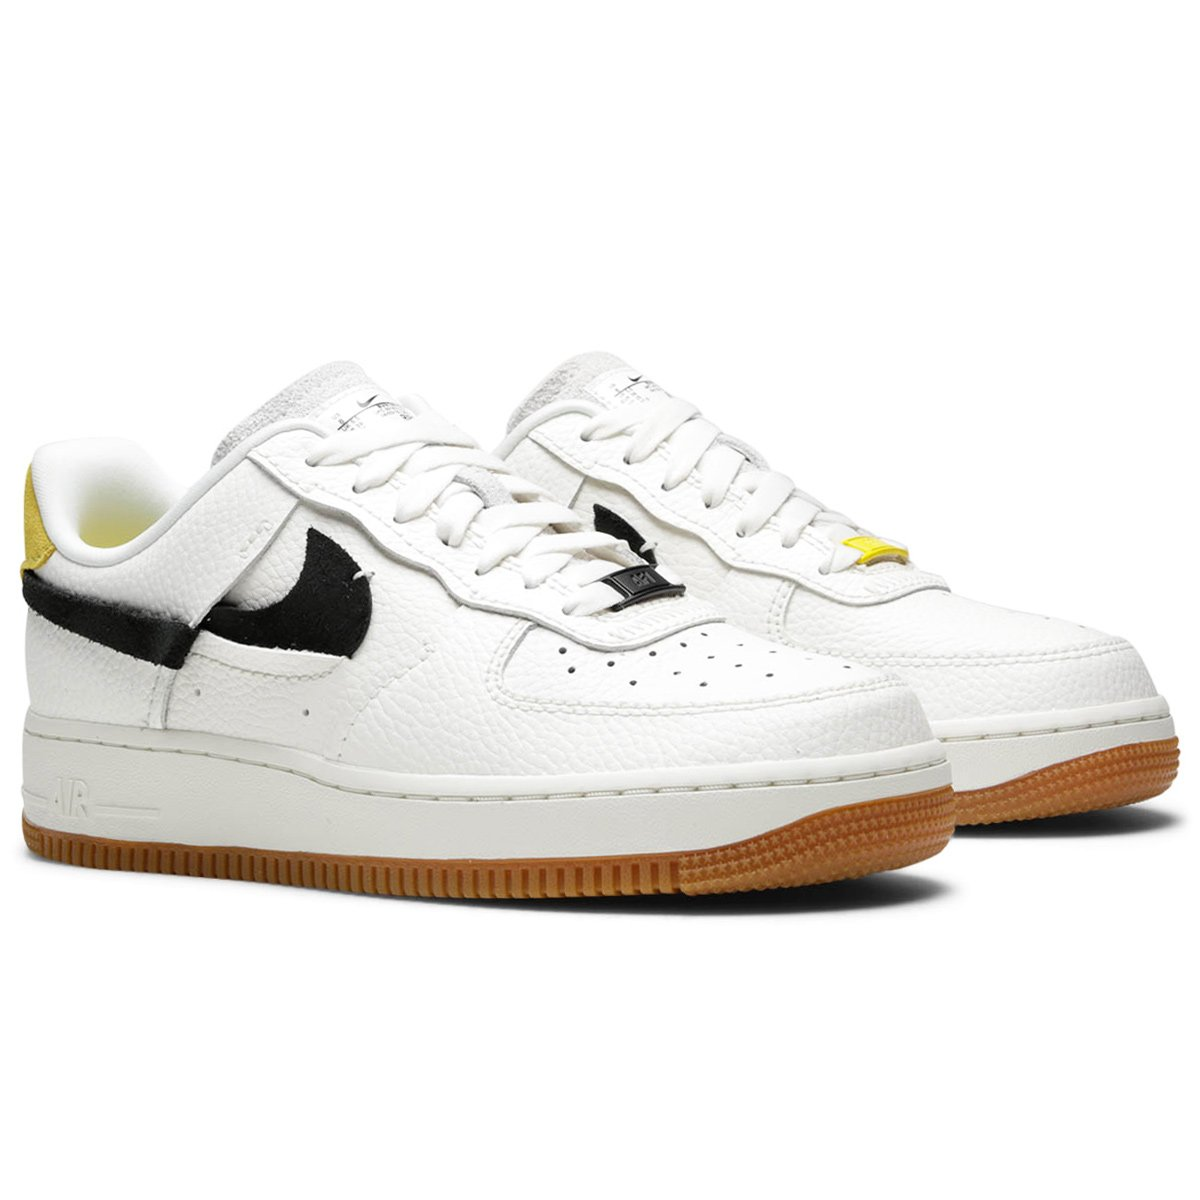 WOMEN'S AIR FORCE 1 '07 LXX [101] – Bodega